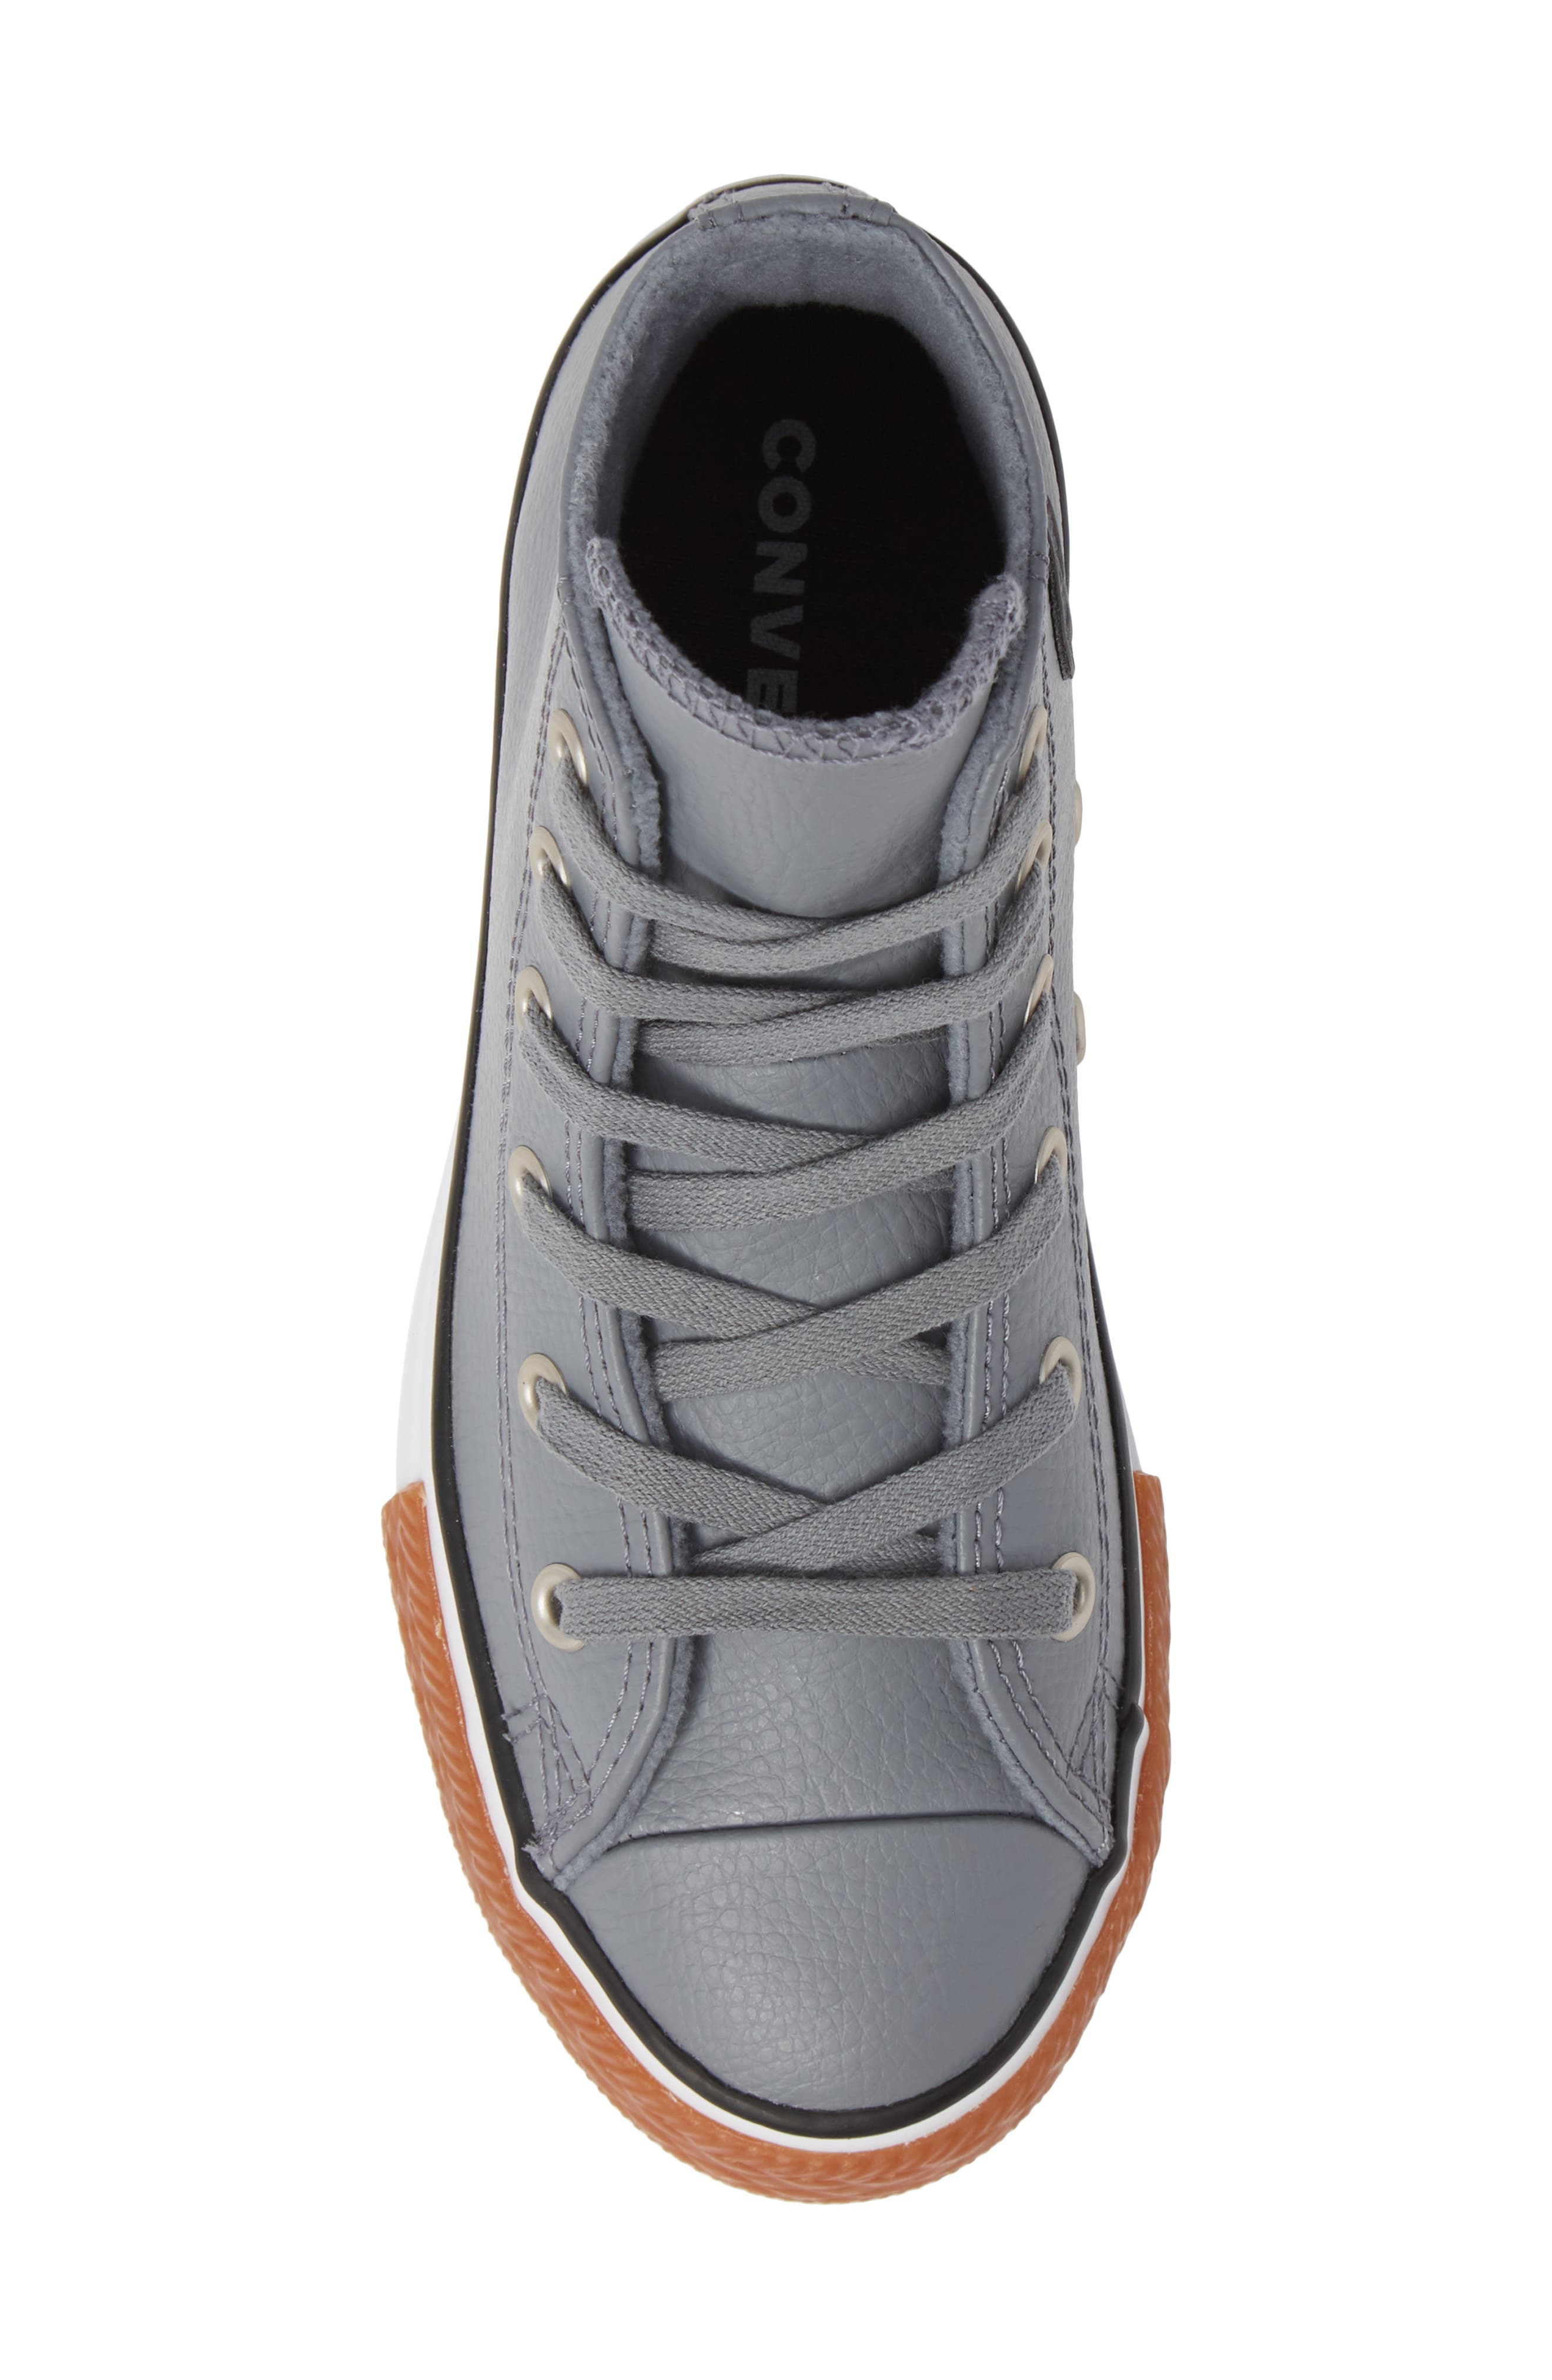 Chuck Taylor<sup>®</sup> All Star<sup>®</sup> No Gum In Class Leather High Top Sneaker,                             Alternate thumbnail 5, color,                             039